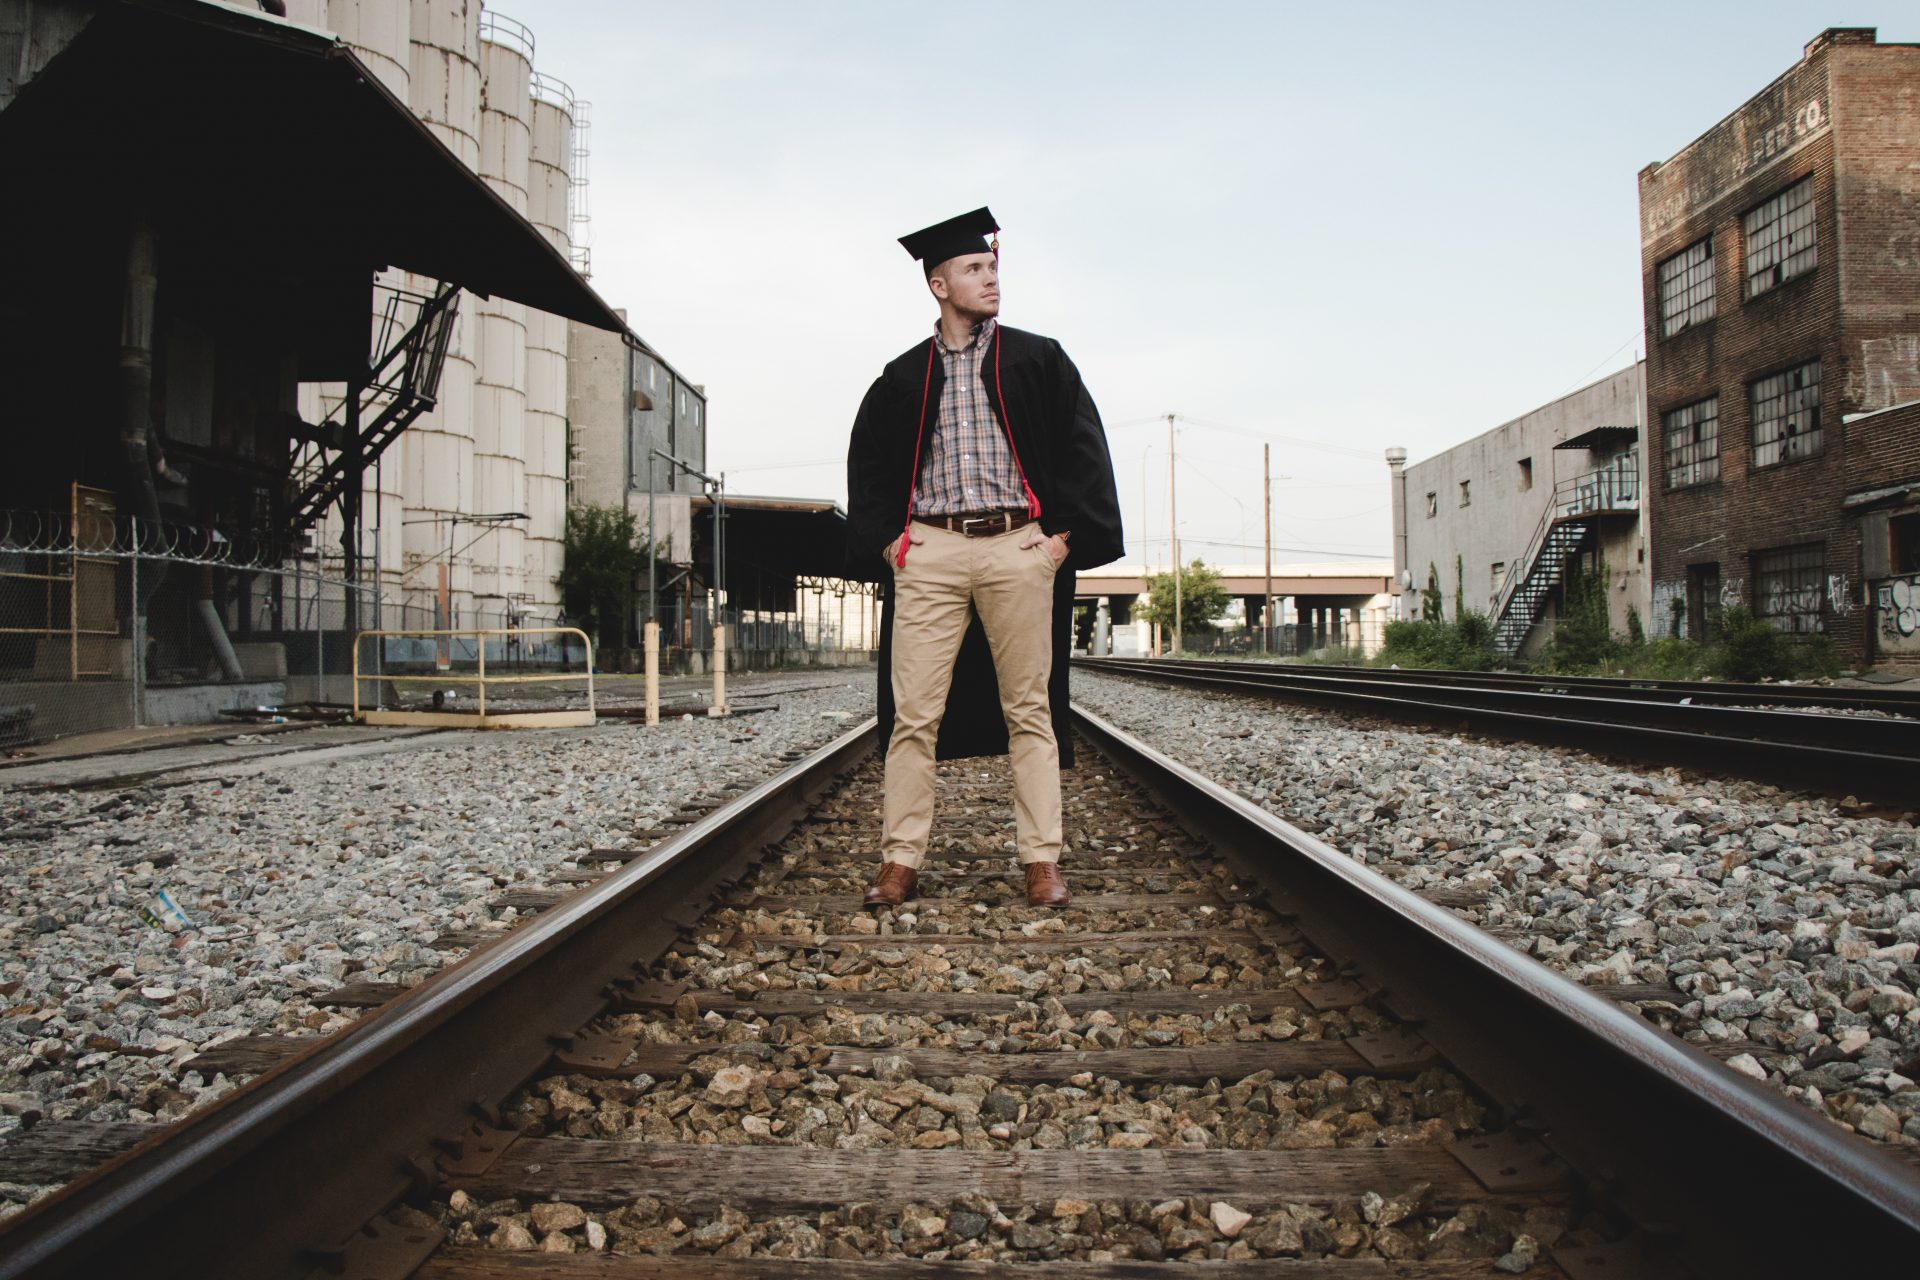 South College Graduate standing on the Knoxville railroad.